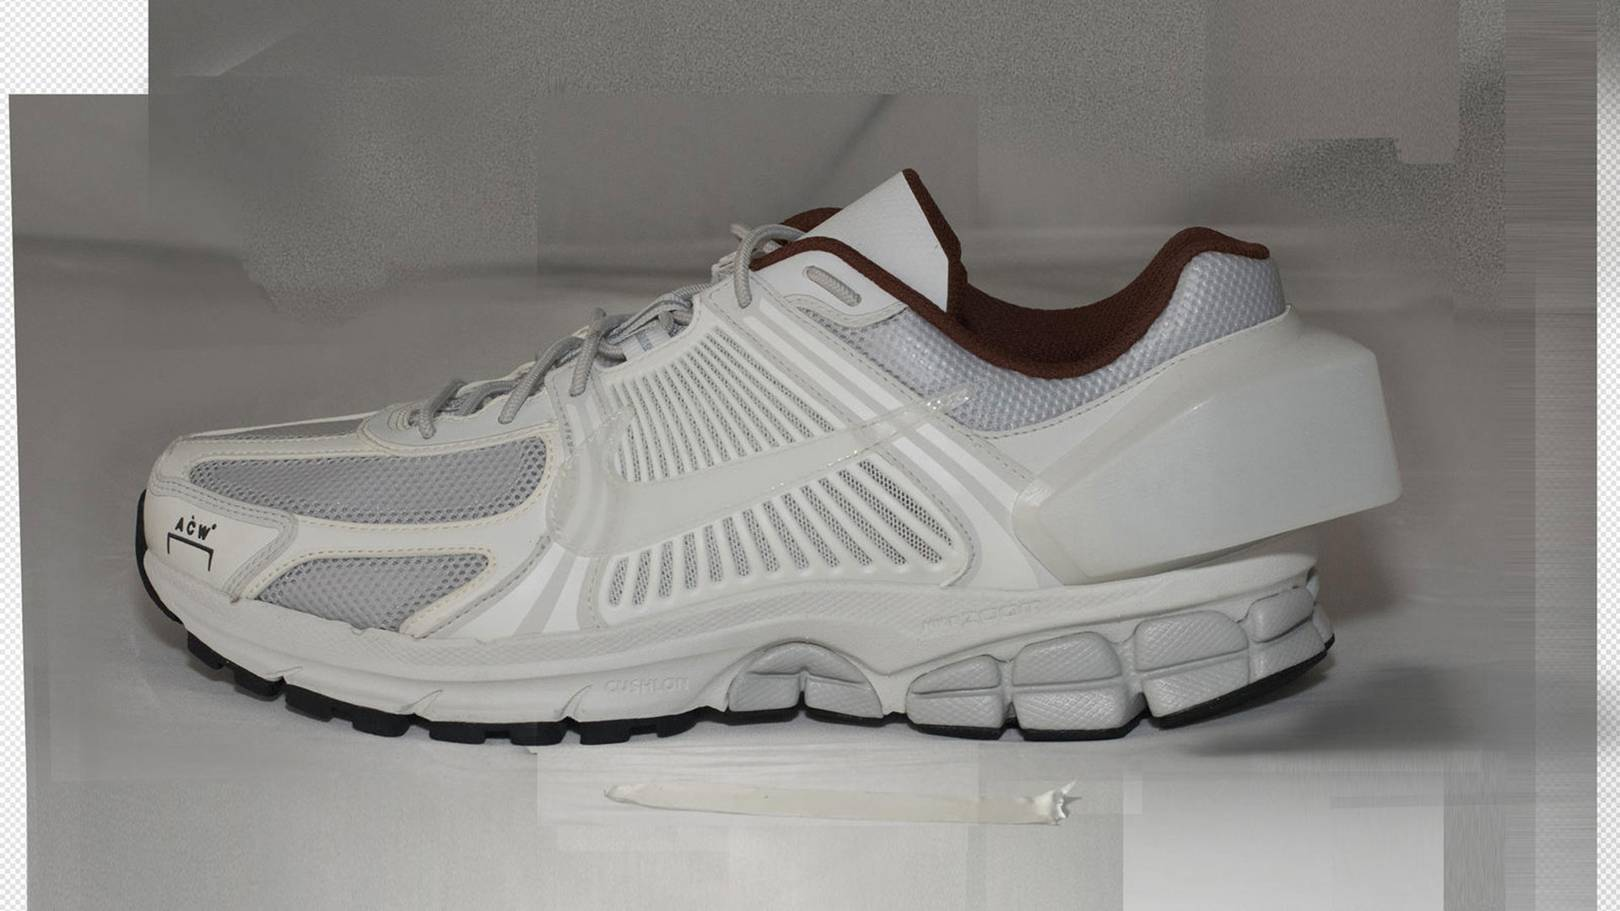 bfa97d40d428a Introducing Nike x A-Cold-Wall   The Trainers Rejecting Box-Fresh Sneaker  Culture